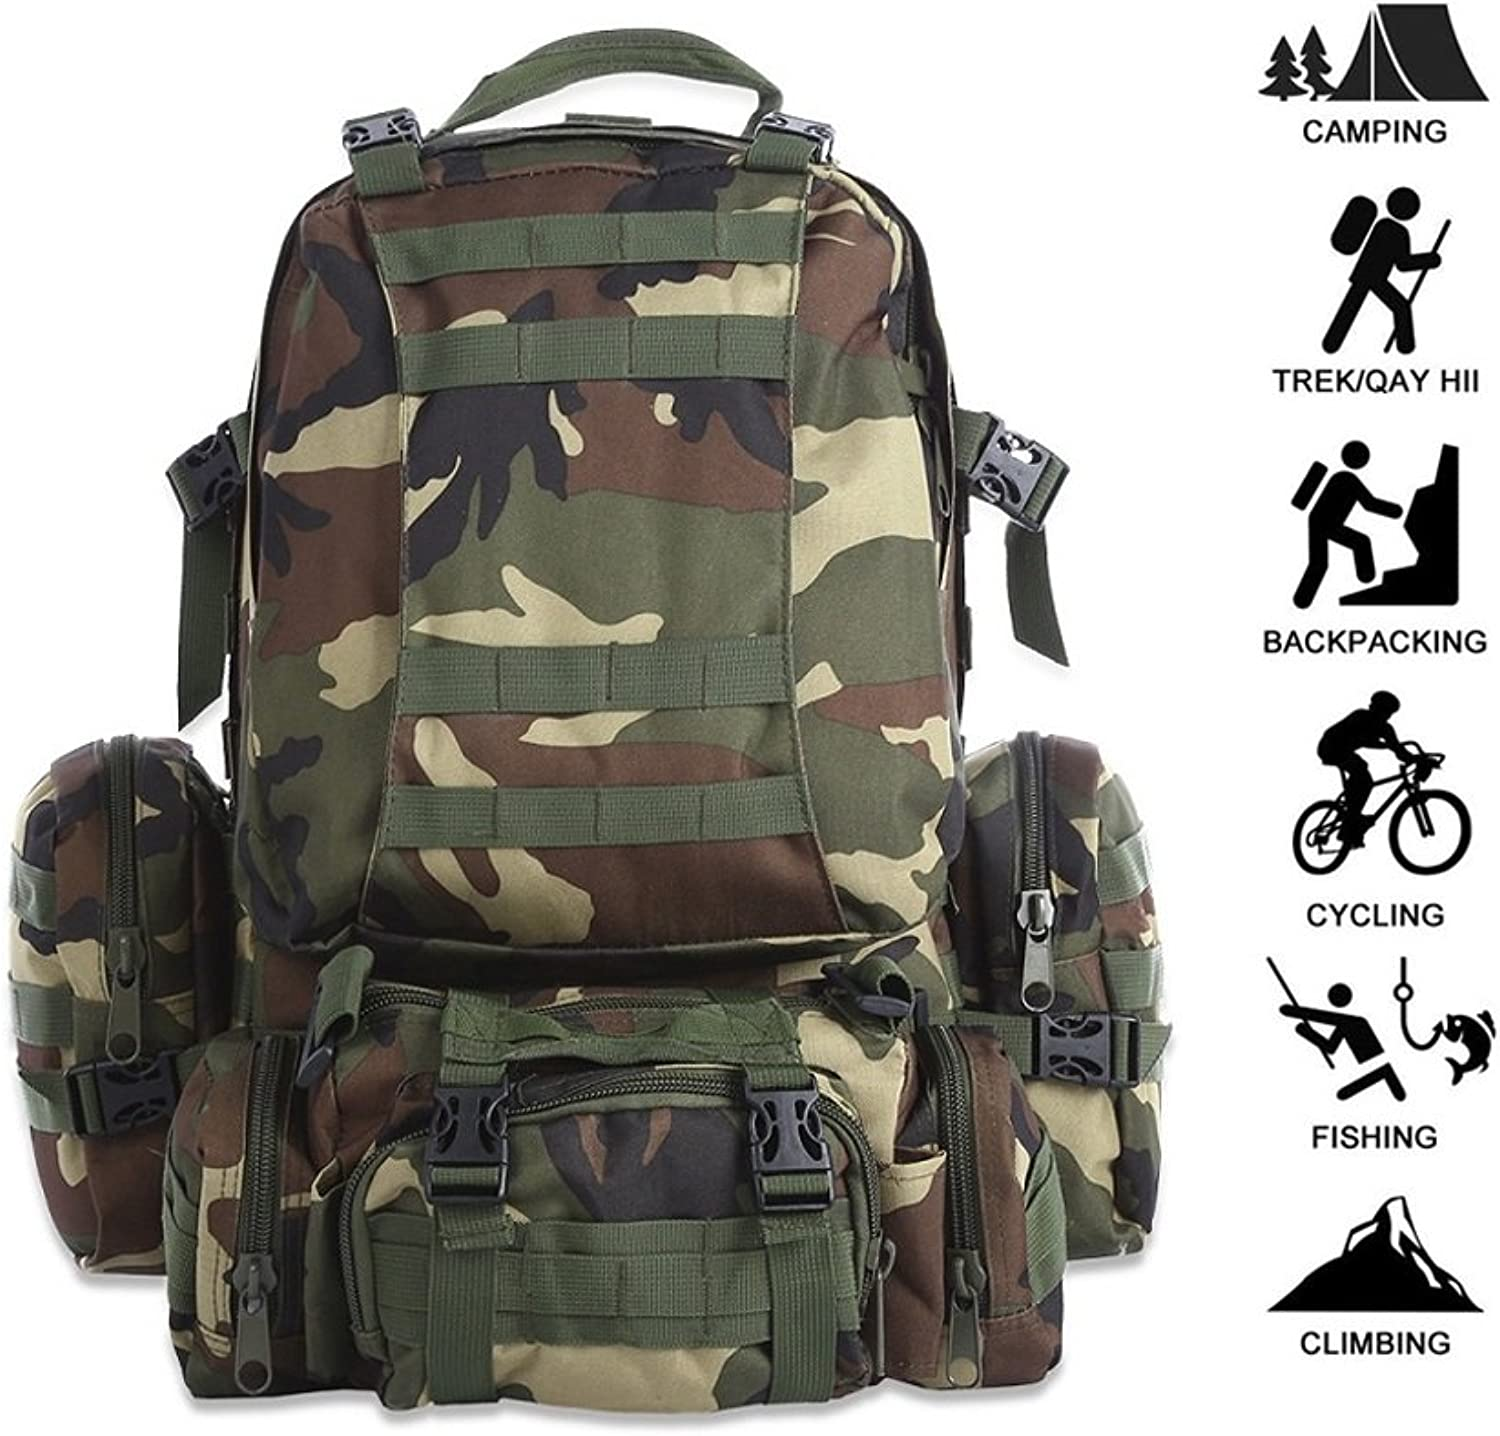 Outdoor Sports Backpack Large Capacity Camping Travel Bag, Oxford Cloth Waterproof Backpack Camouflage Travel Fishing Backpack Mountaineering Combination Backpack